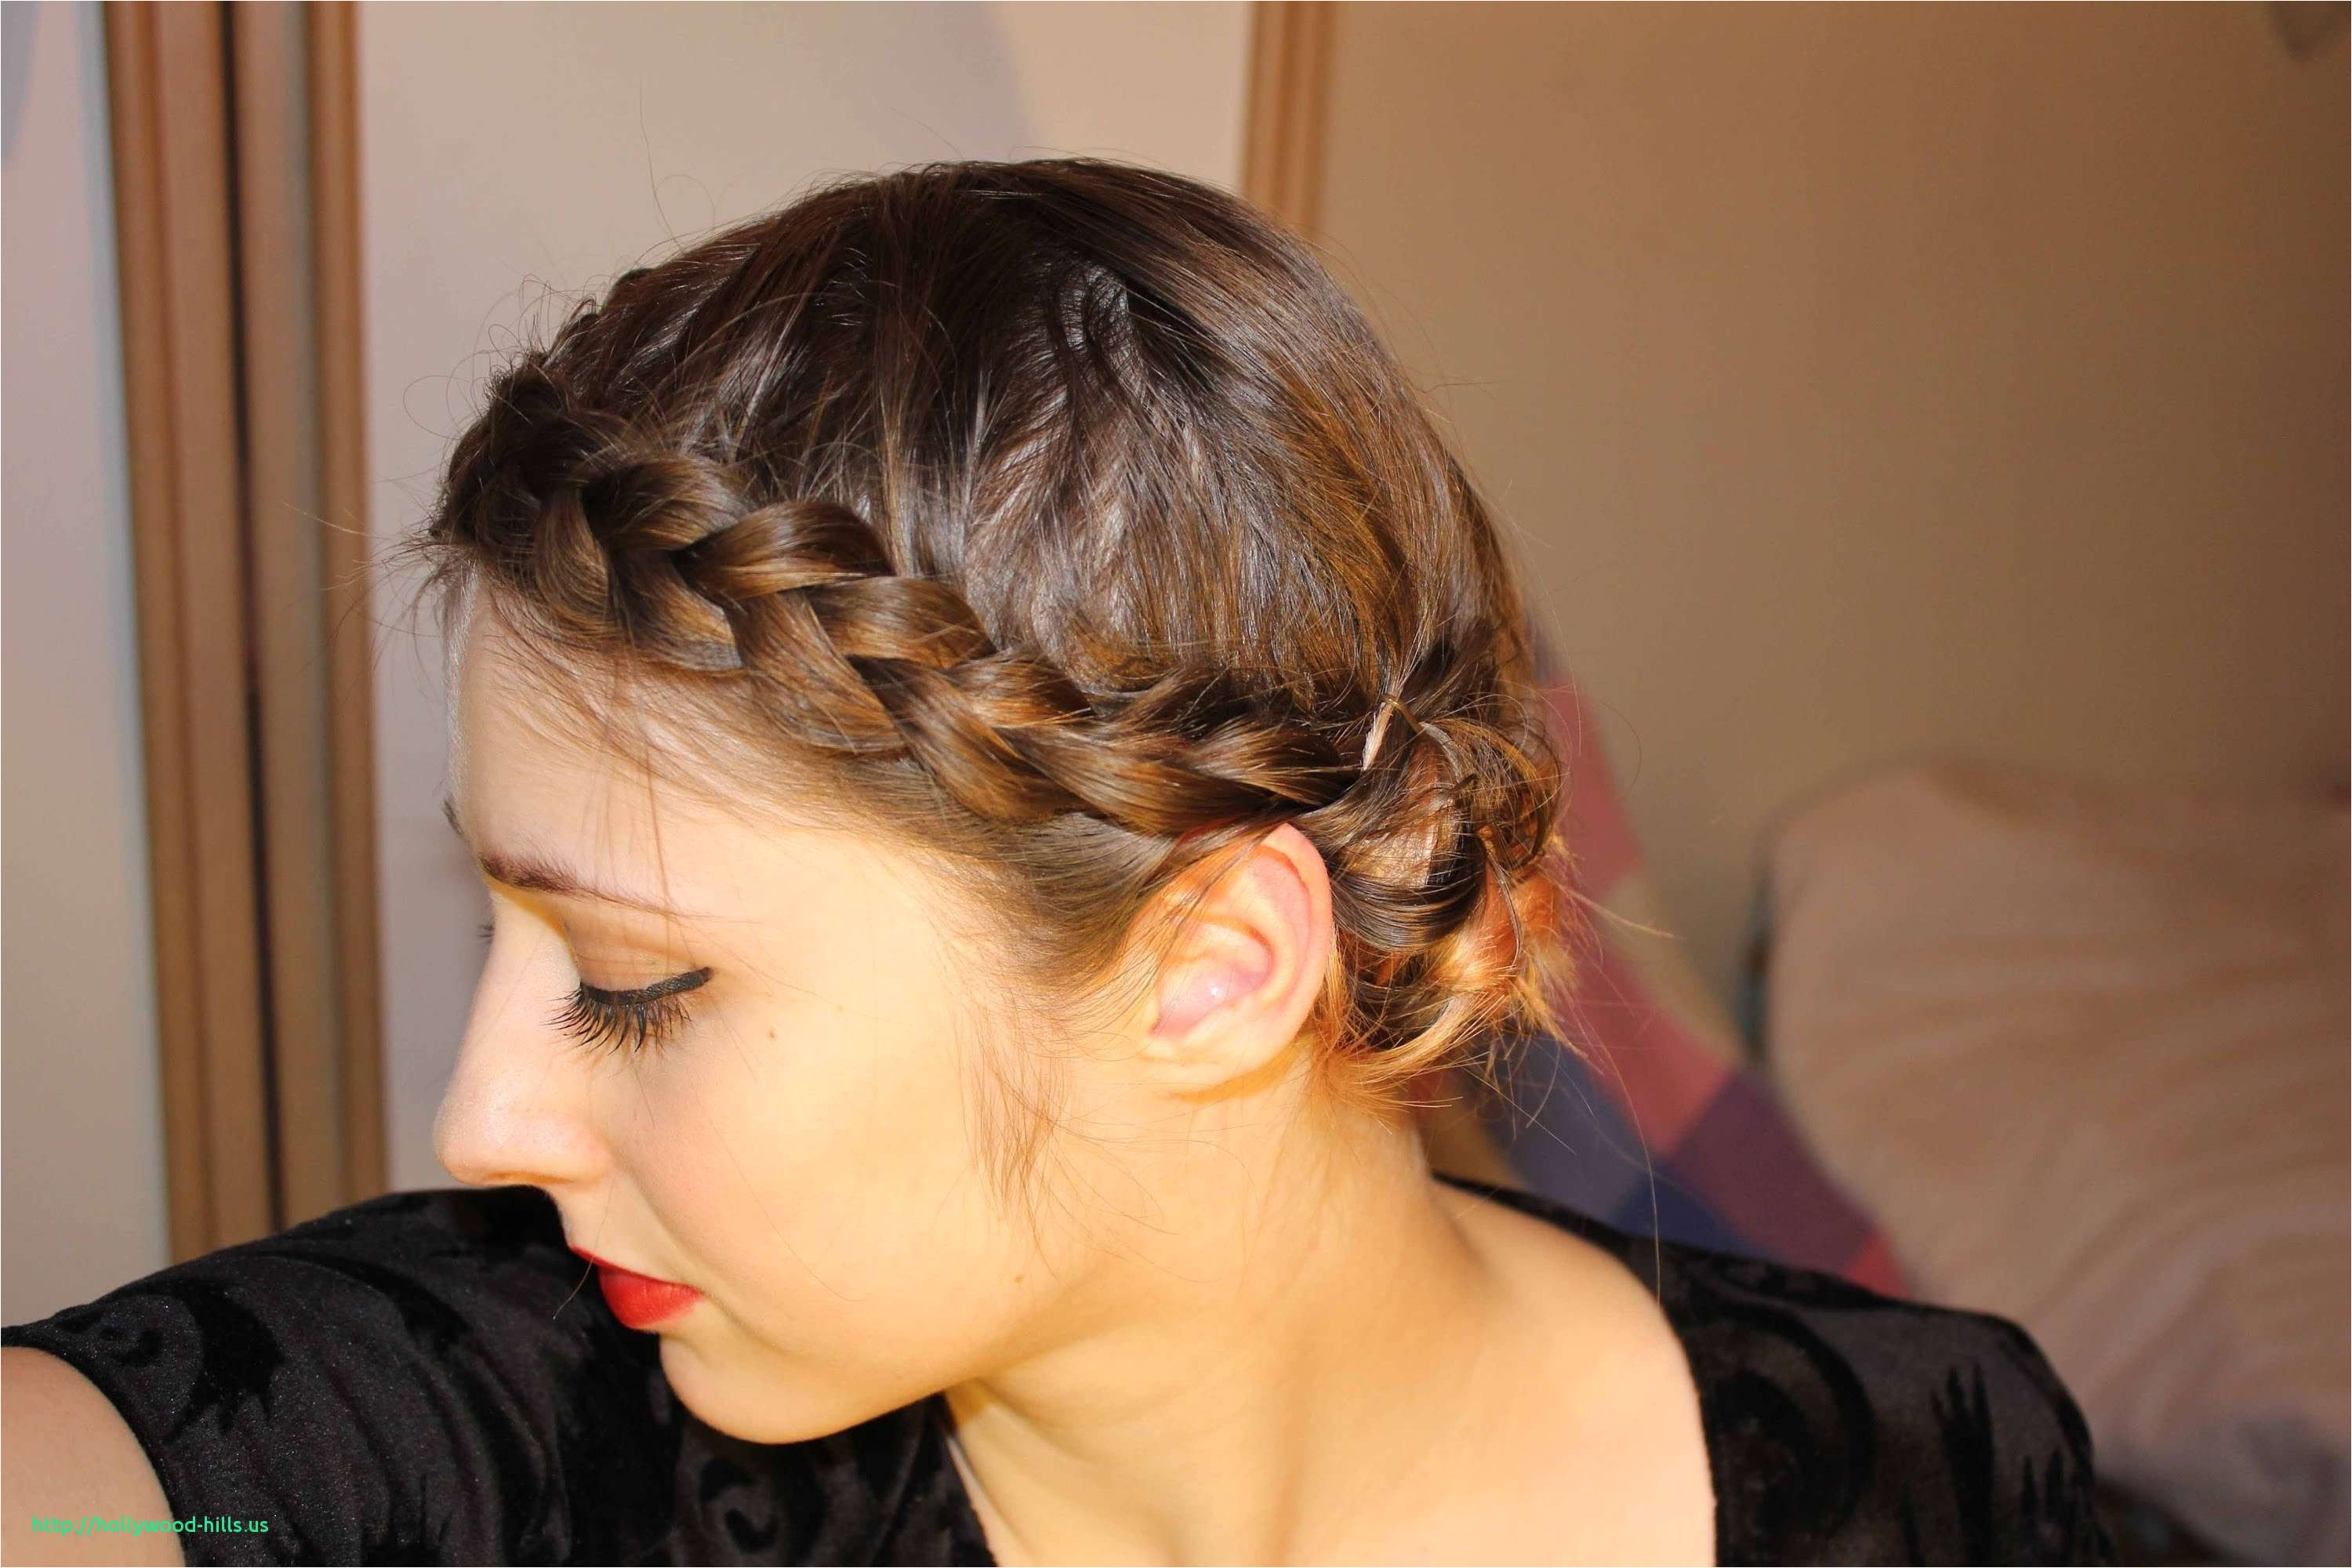 Braids for Little Girl Hairstyles New Pretty Hairstyles for Kids New Easy Cute Hairstyles for Little